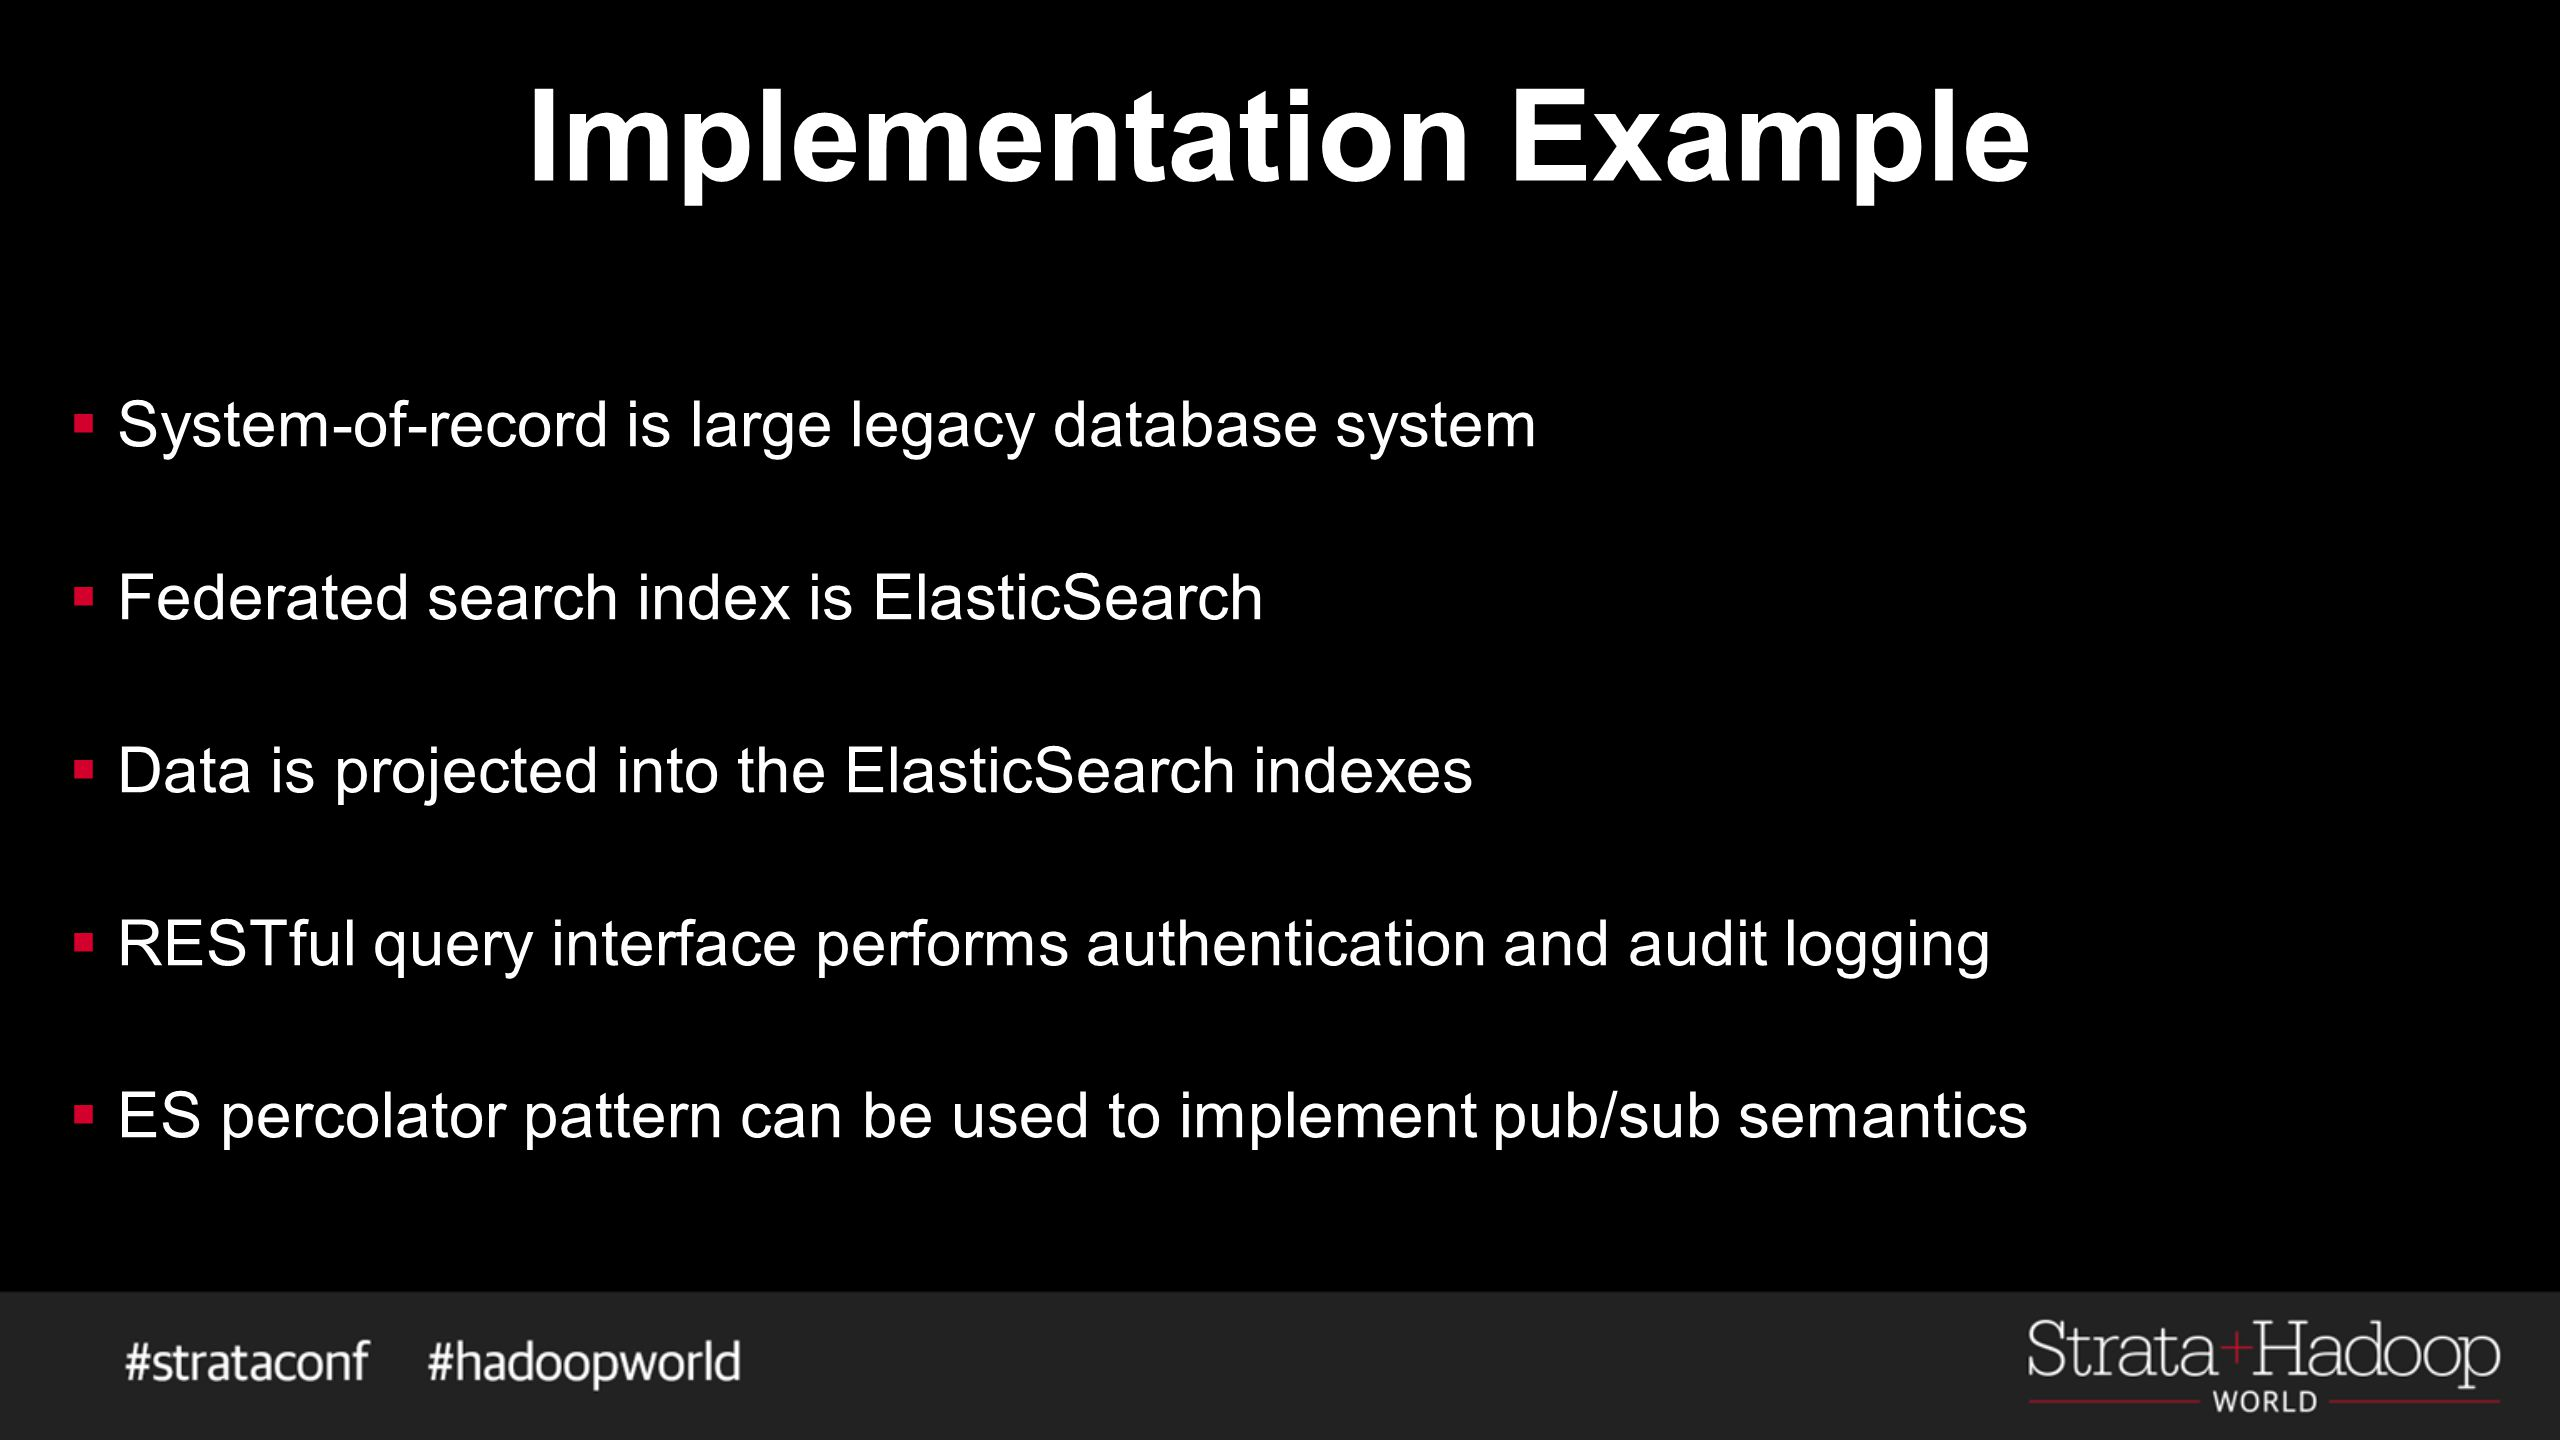 Implementation Example  System-of-record is large legacy database system  Federated search index is ElasticSearch  Data is projected into the ElasticSearch indexes  RESTful query interface performs authentication and audit logging  ES percolator pattern can be used to implement pub/sub semantics